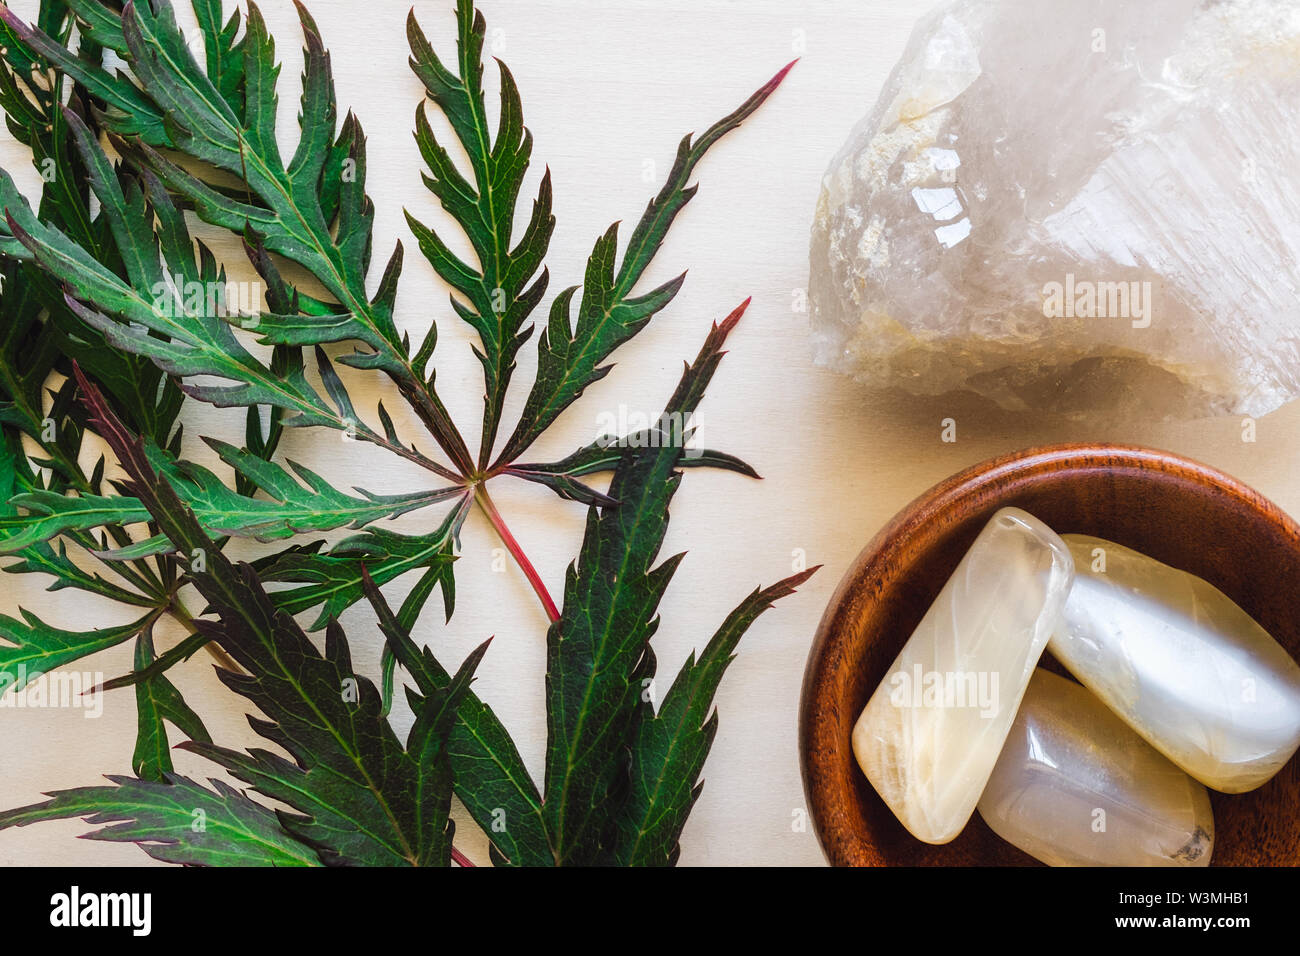 Moonstone with Quartz and Japanese Maple Leaves on Wood - Stock Image